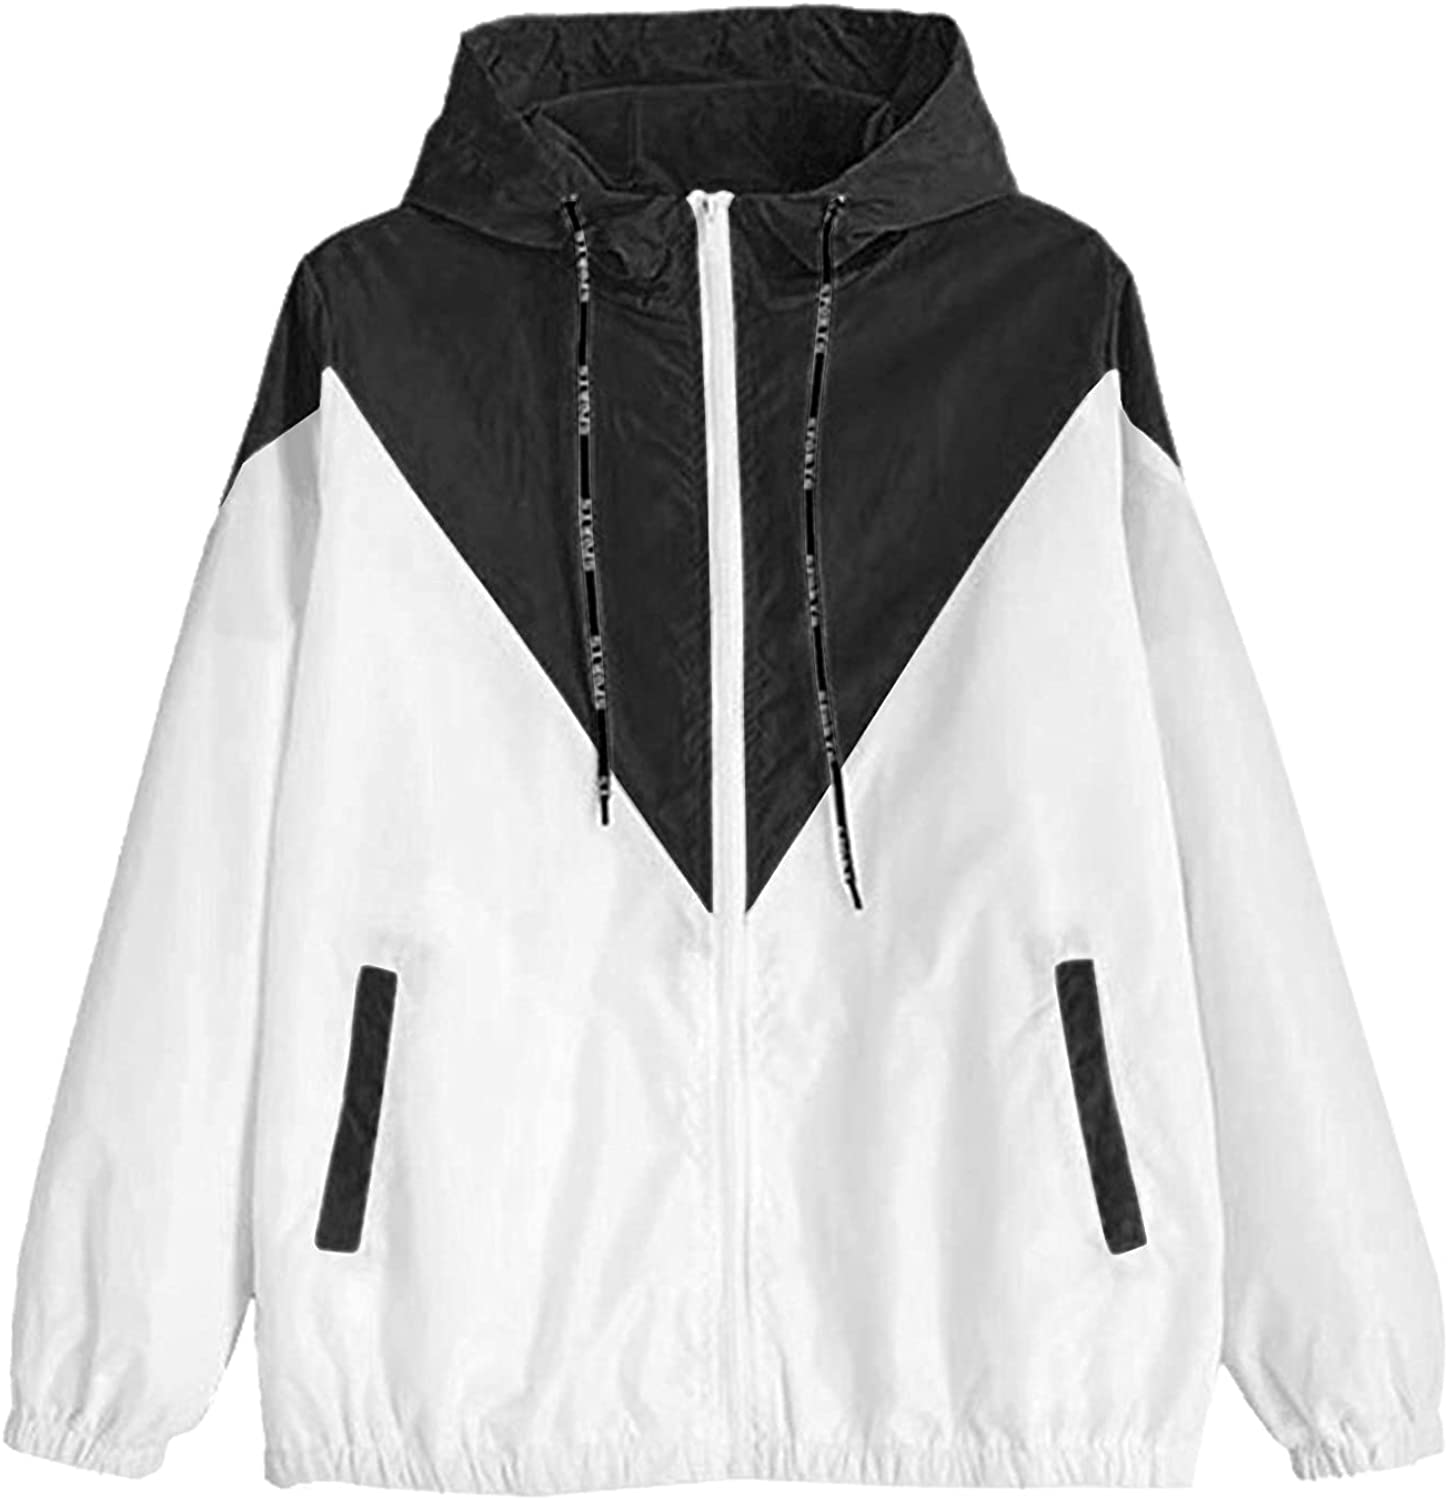 Zip Cheap mail order shopping Up Hoodie Women Hoodies Surprise price For Sleeve Teen Long Girls Patchwork